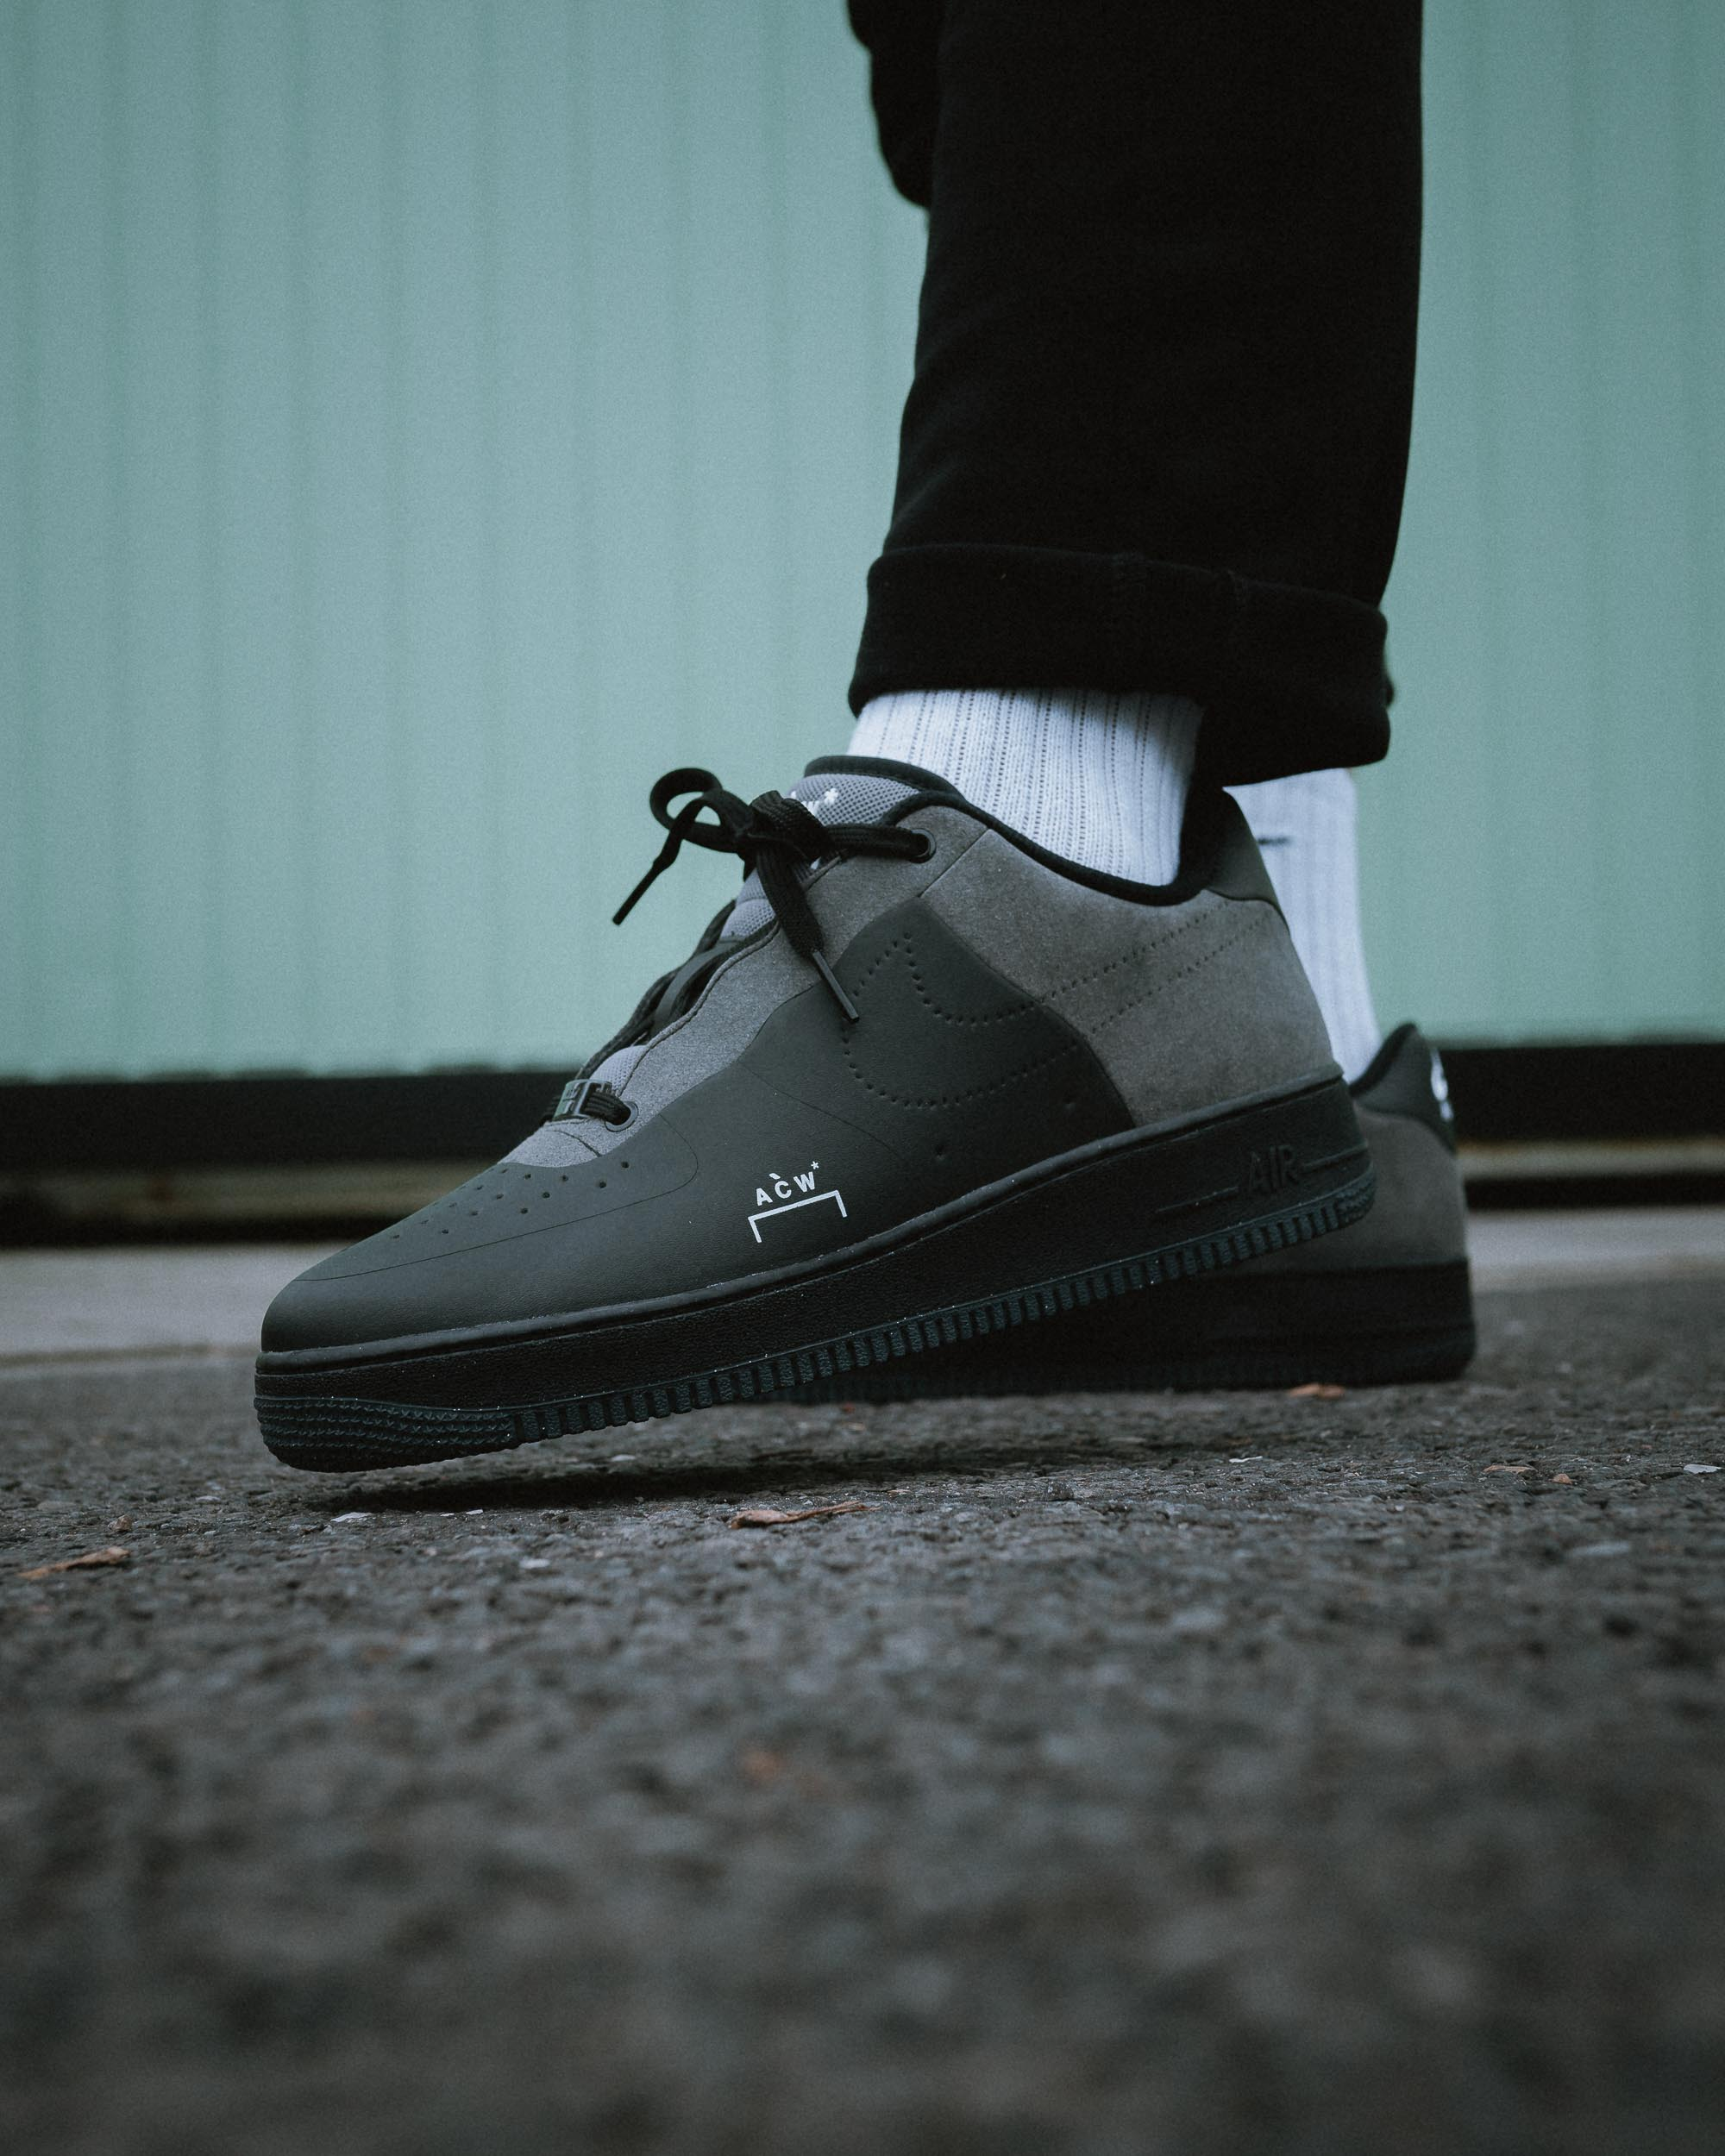 Nike x A-COLD-WALL* Air Force 1 - on